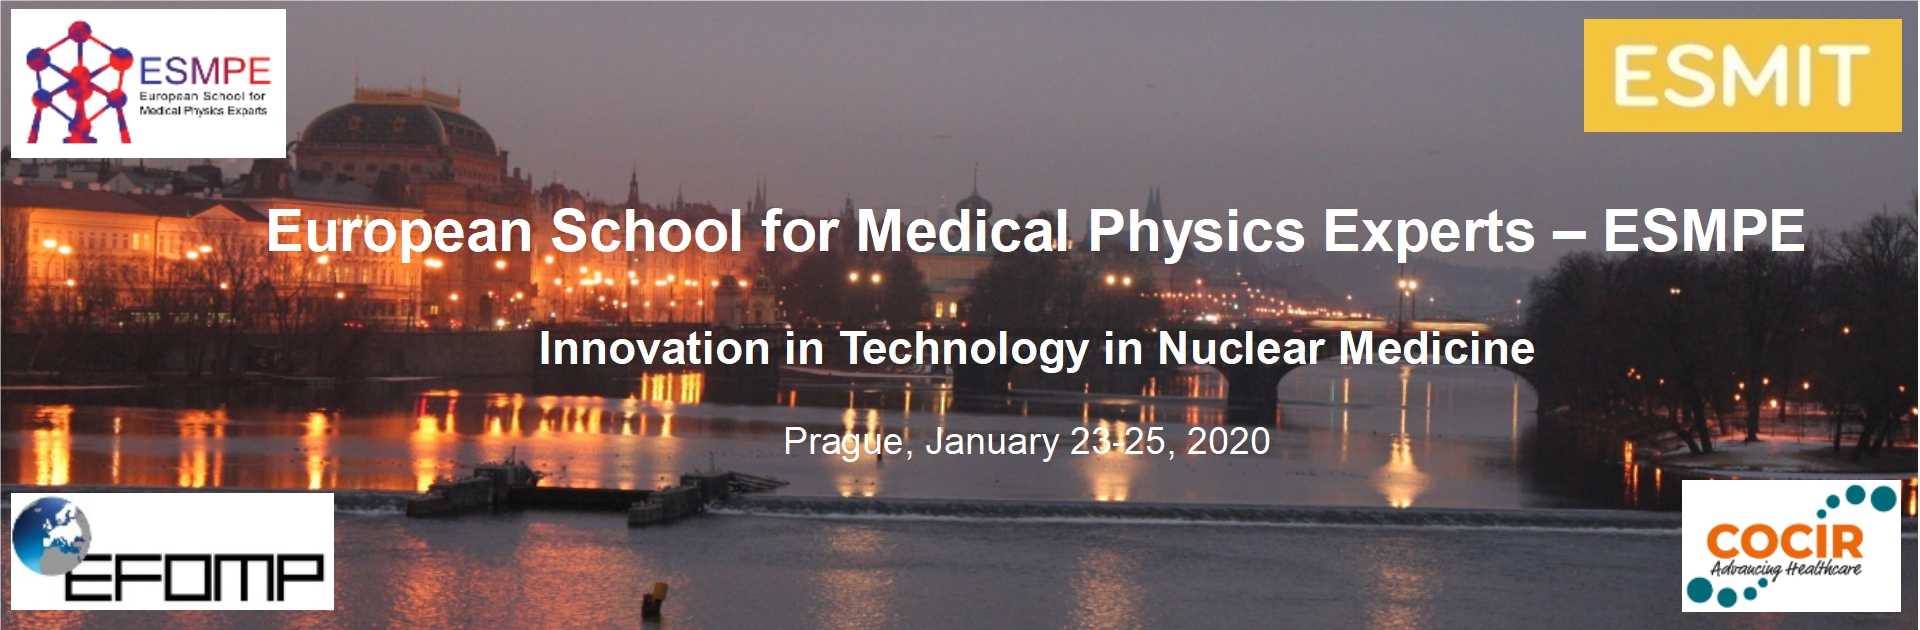 Innovation in Technology in Nuclear Medicine